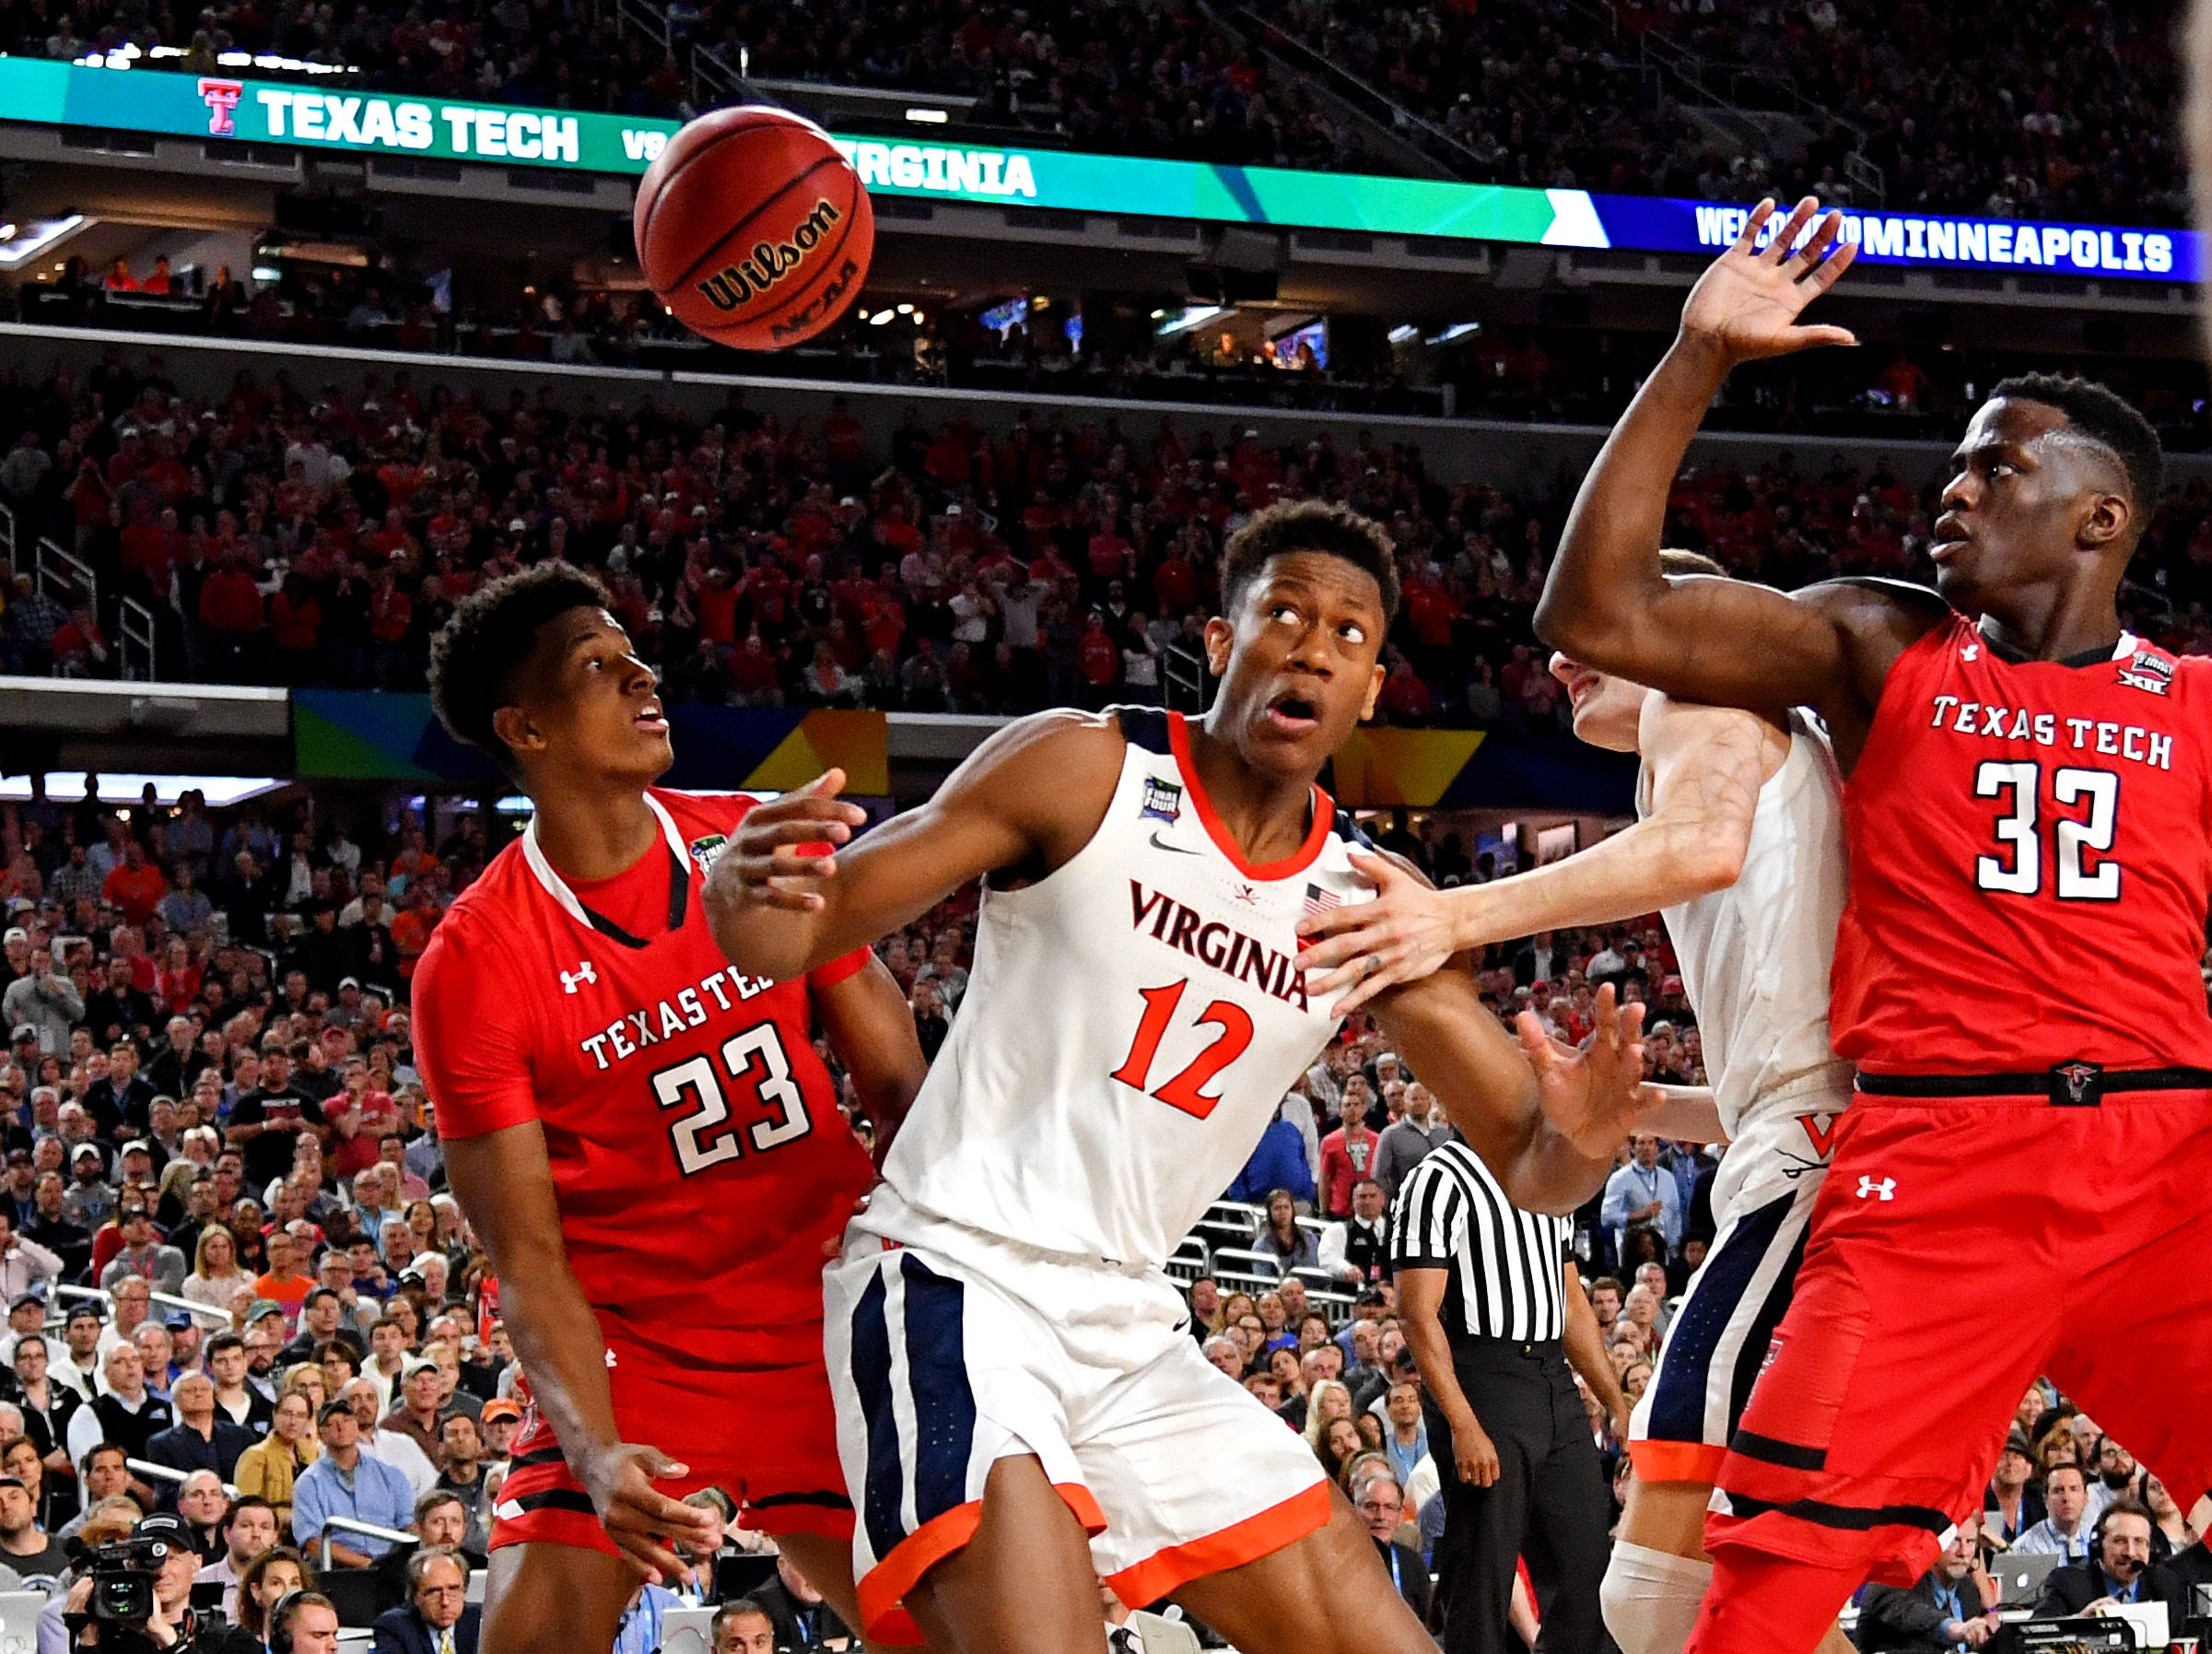 Apr 8, 2019; Minneapolis, MN, USA; Virginia Cavaliers guard De'Andre Hunter (12) and Texas Tech Red Raiders guard Jarrett Culver (23) go for a loose ball during the second half in the championship game of the 2019 men's Final Four at US Bank Stadium. Mandatory Credit: Bob Donnan-USA TODAY Sports